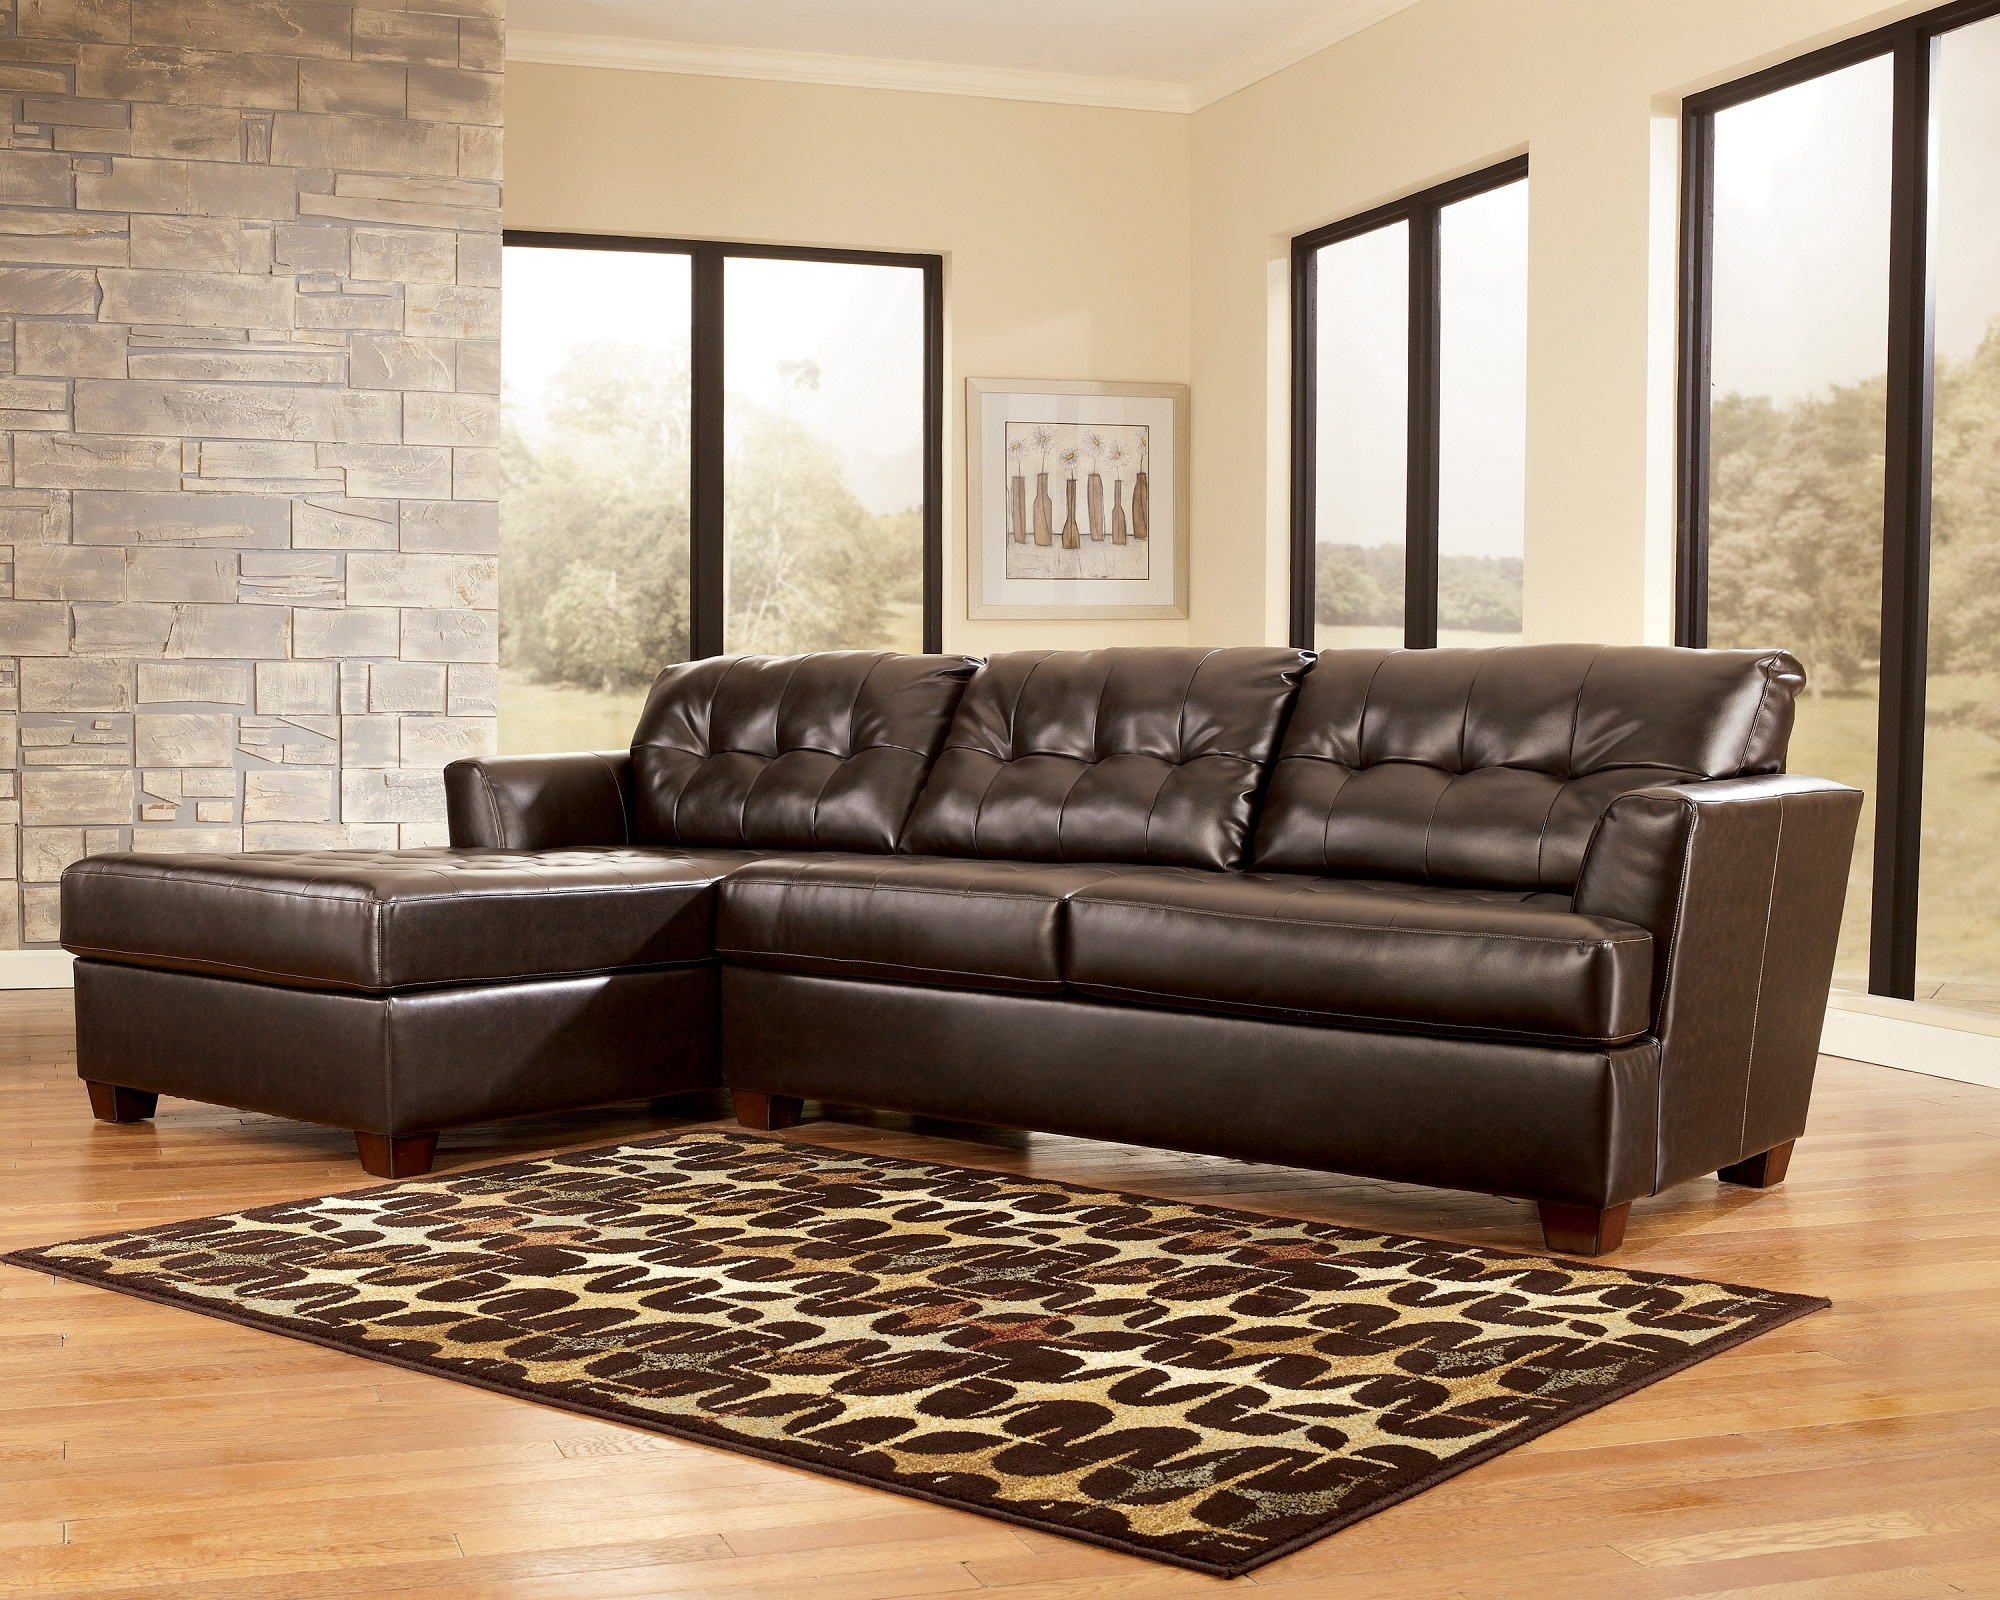 Inspiring leather sleeper sofa for furnishing our living for Living room with leather sectional